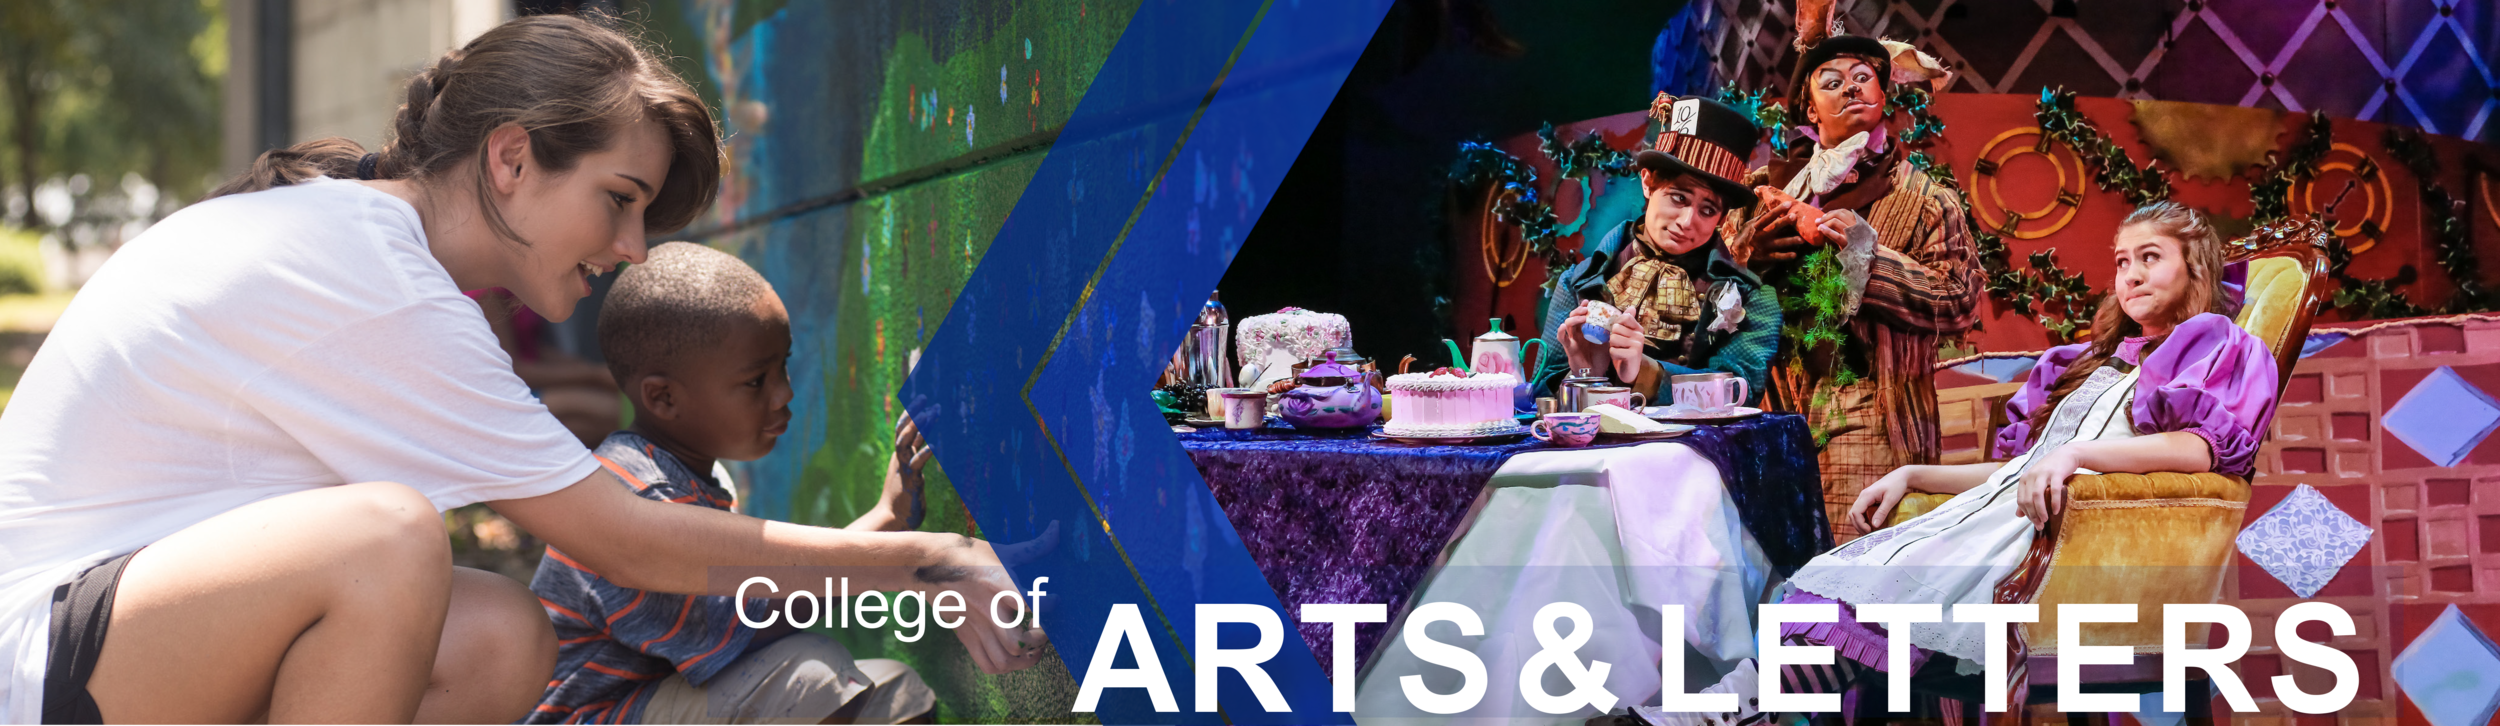 College of Arts and Letters page banner: Features a University of North Georgia art student helping a child paint a wall in the community. Also featured is a photo from the play Alice in Wonderland performed by University of North Georgia theater students.